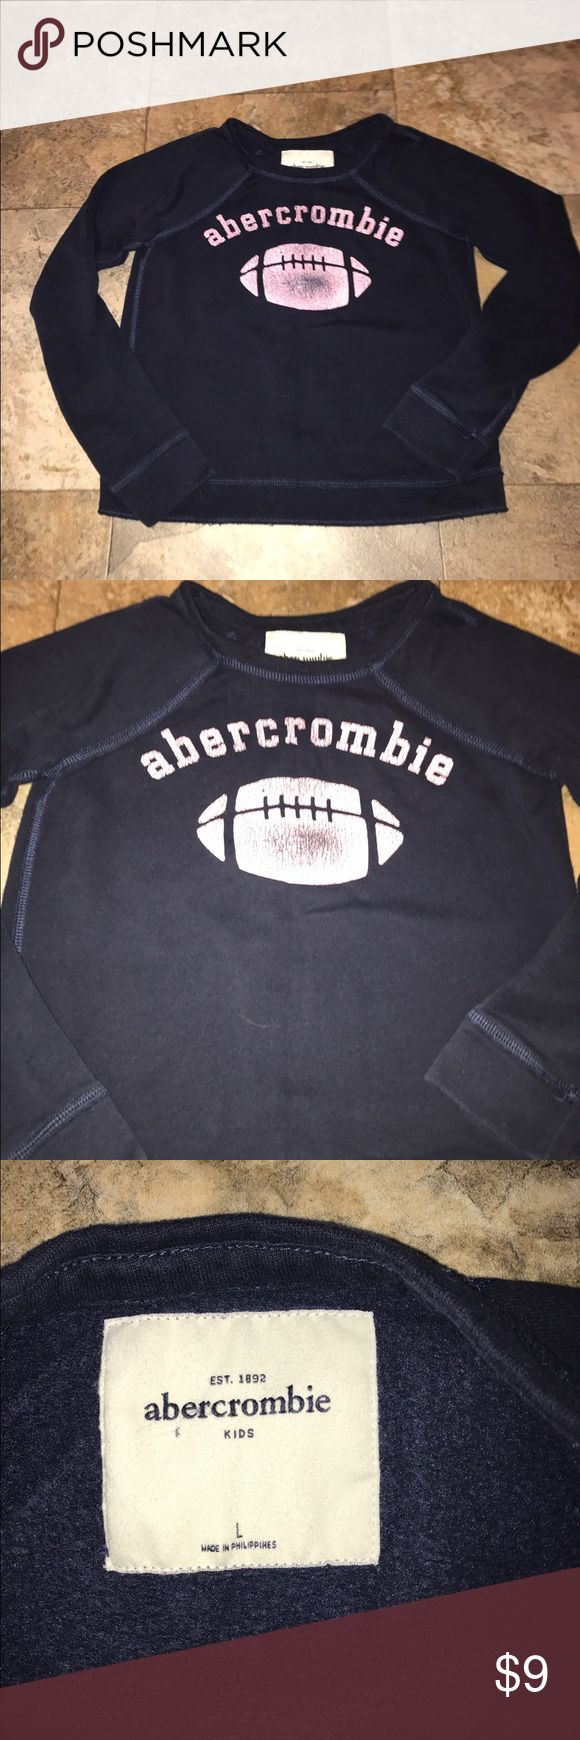 Abercrombie girls sweatshirt large EUC Abercrombie girls sweatshirt large EUC abercrombie kids Shirts & Tops Sweatshirts & Hoodies